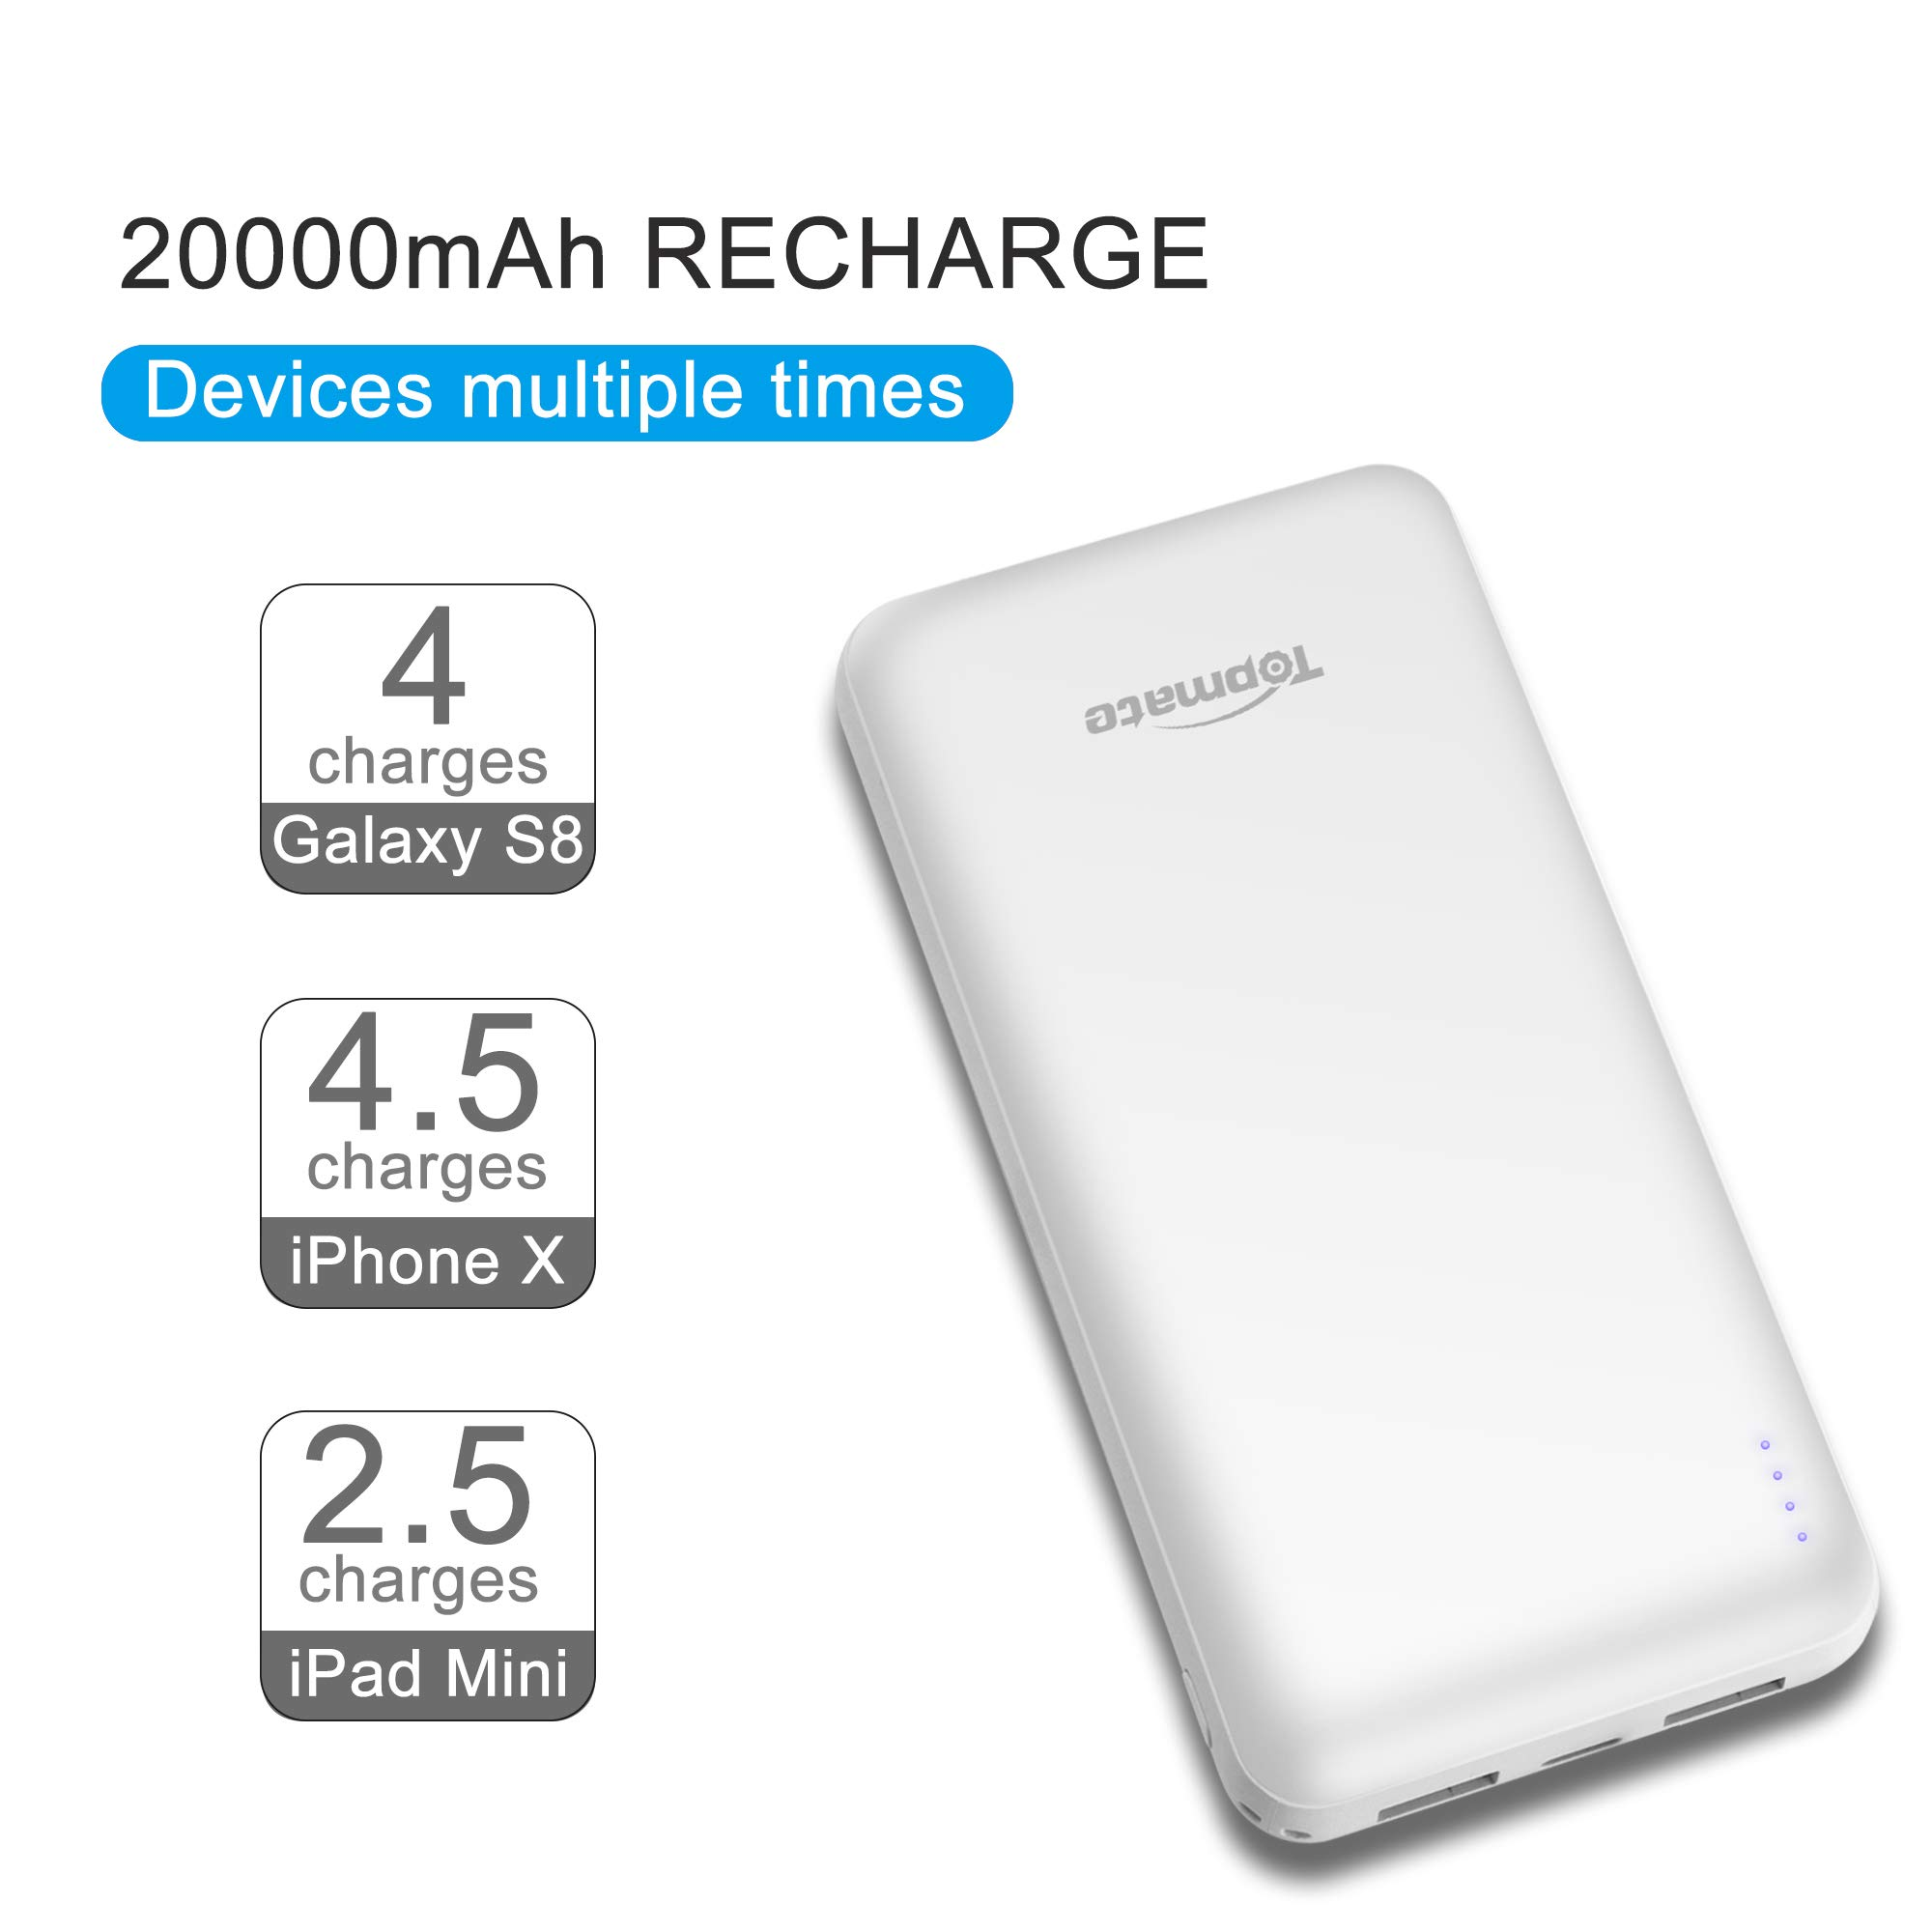 Topmate Power Bank Quick Charge 20000mAh Portable Charger QC 3.0 & PD 3.0 with Type-C Input & Output | Light Weight Design for Cellphone Pad and Some Laptops |White